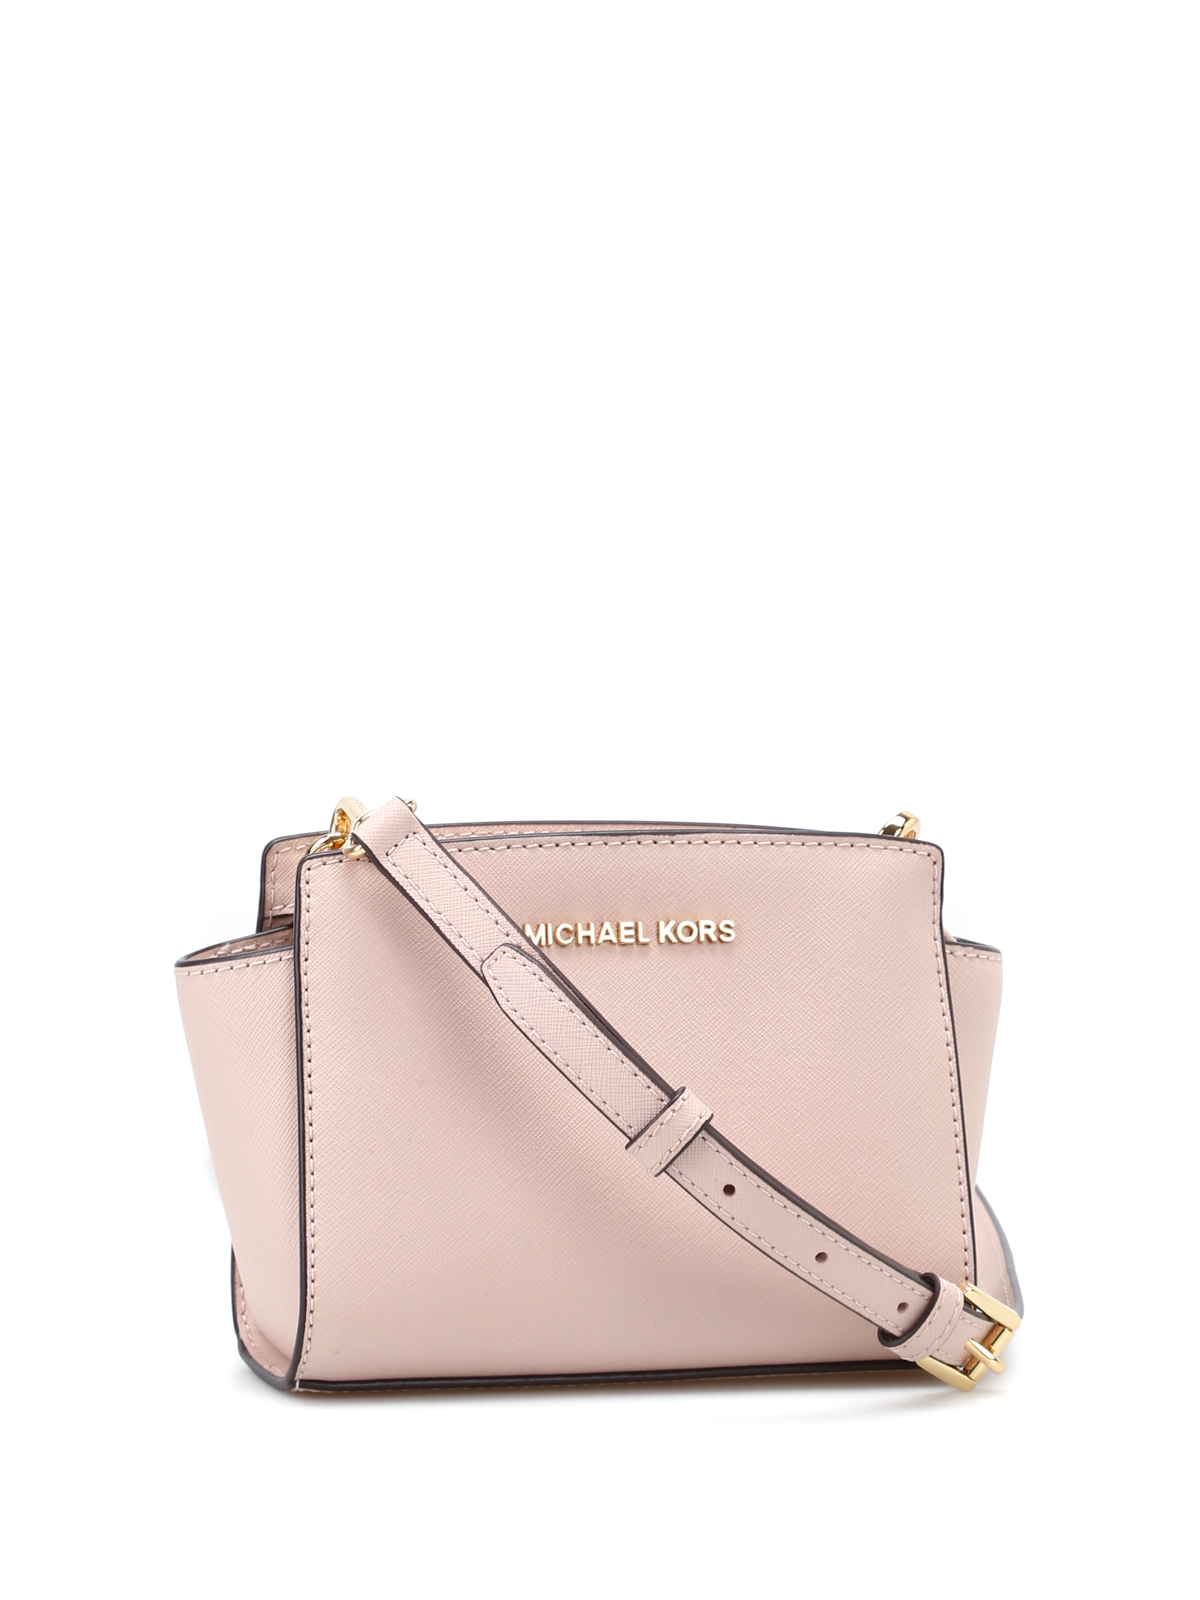 8fc4eb658f4e MICHAEL KORS: cross body bags online - Selma mini soft pink messenger bag